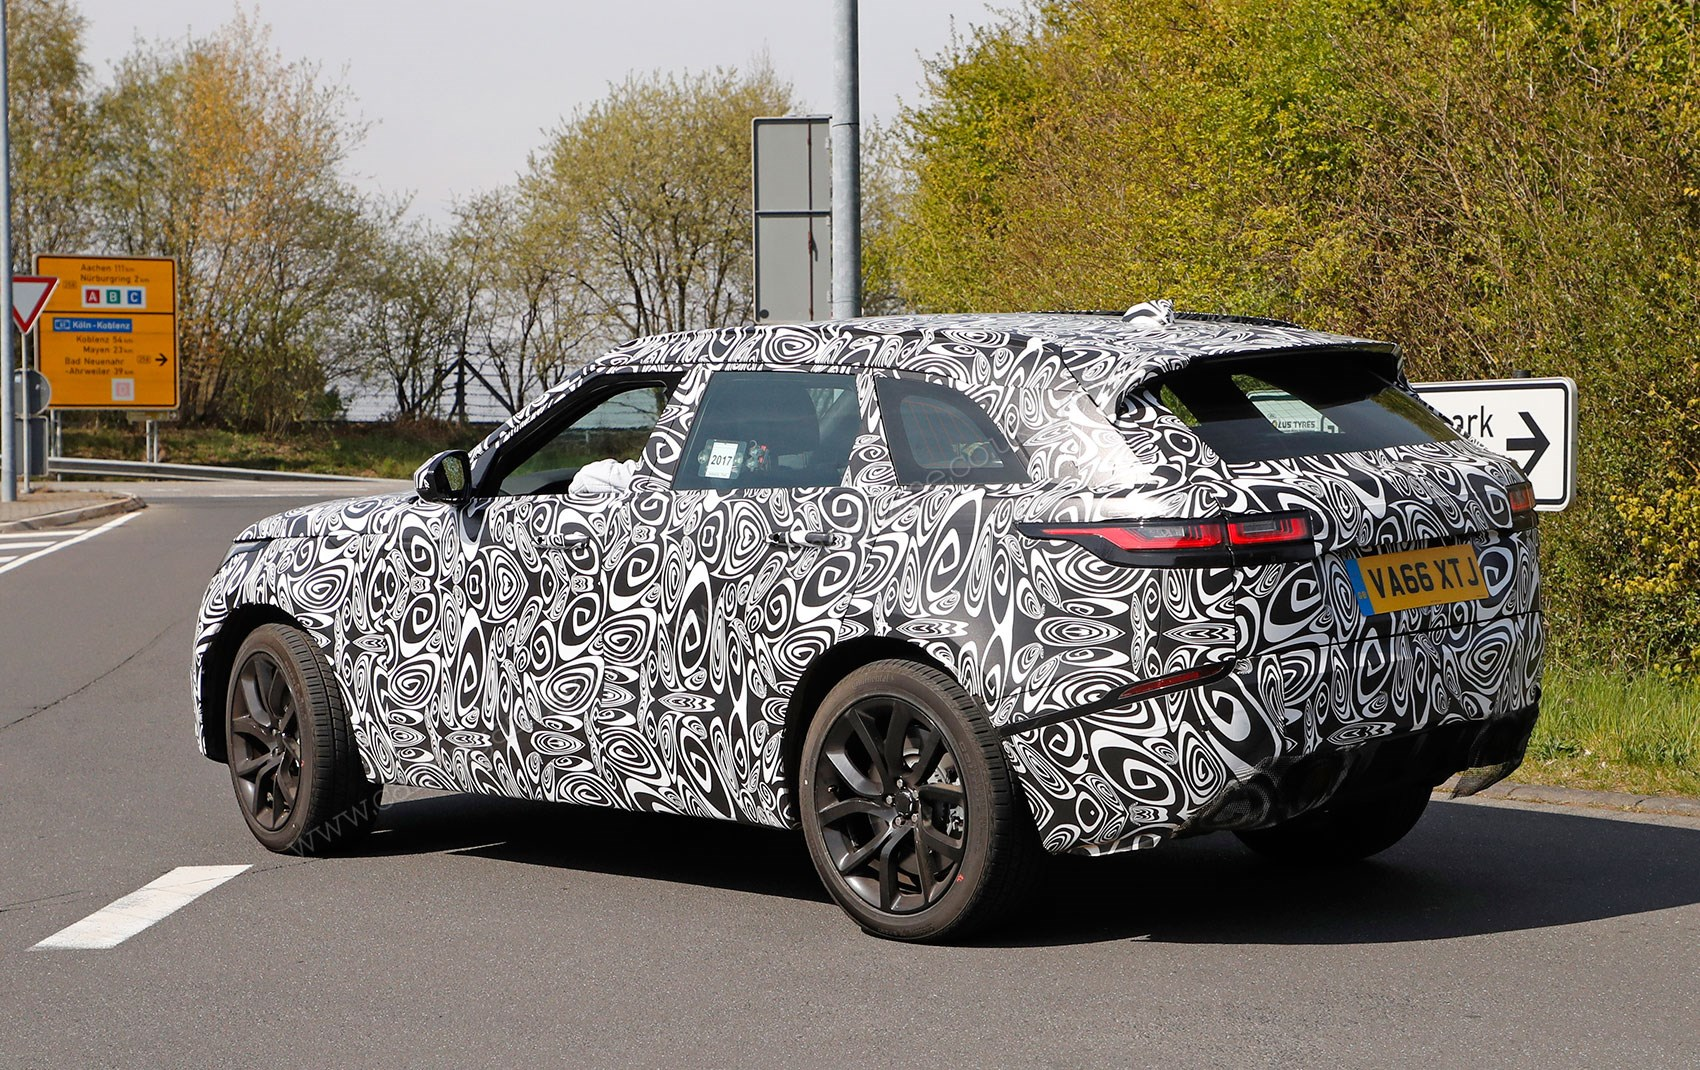 New 2019 Range Rover Velar SVR spied | CAR Magazine